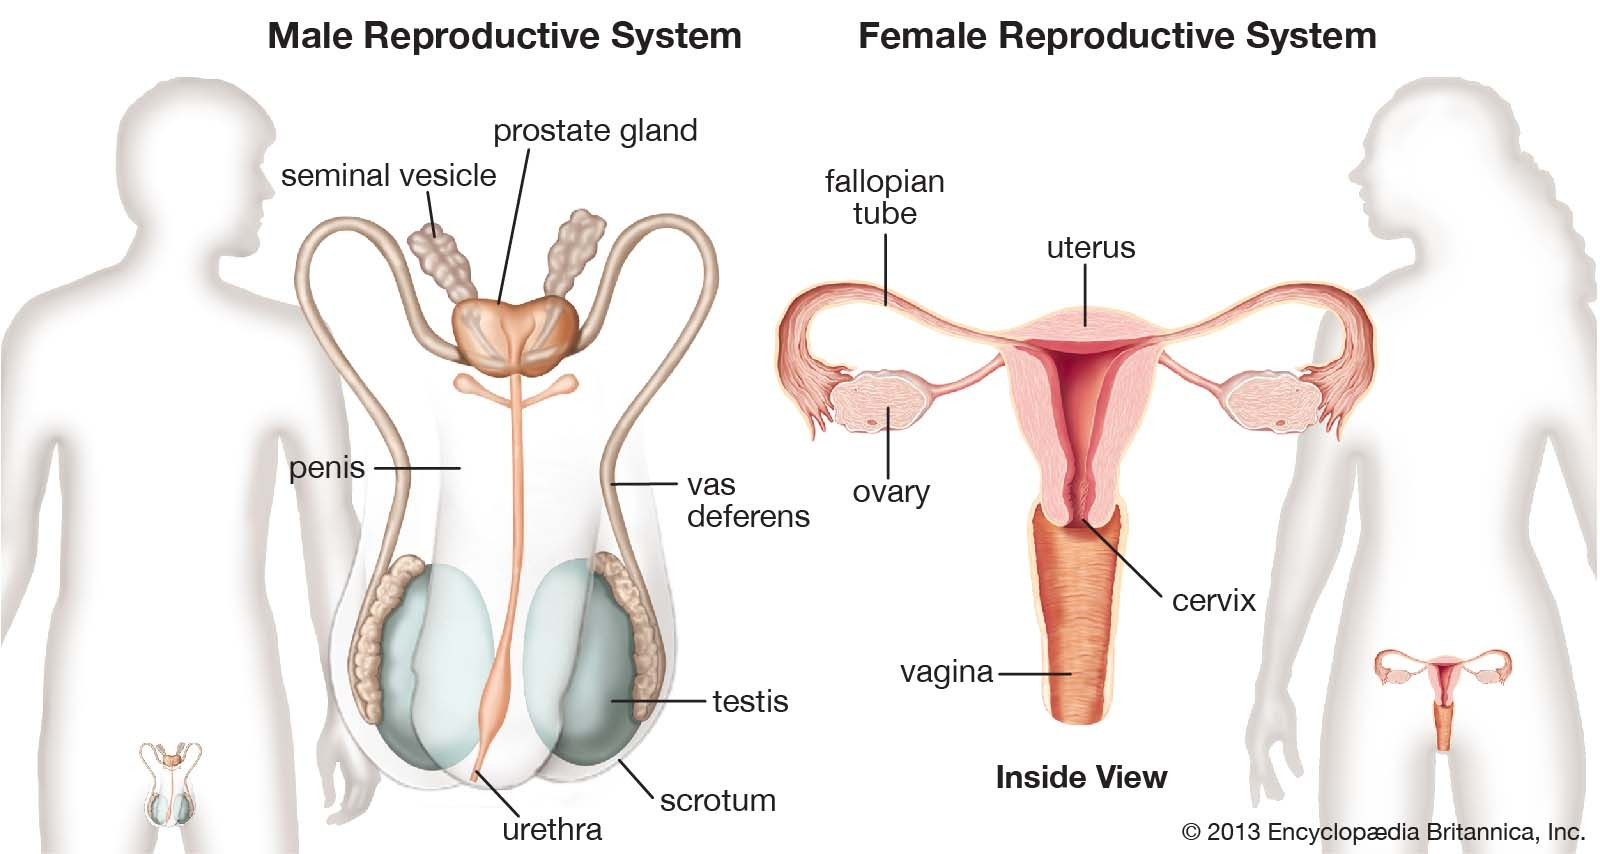 Male Reproductive System And Female Reproductive System Compare Diagram